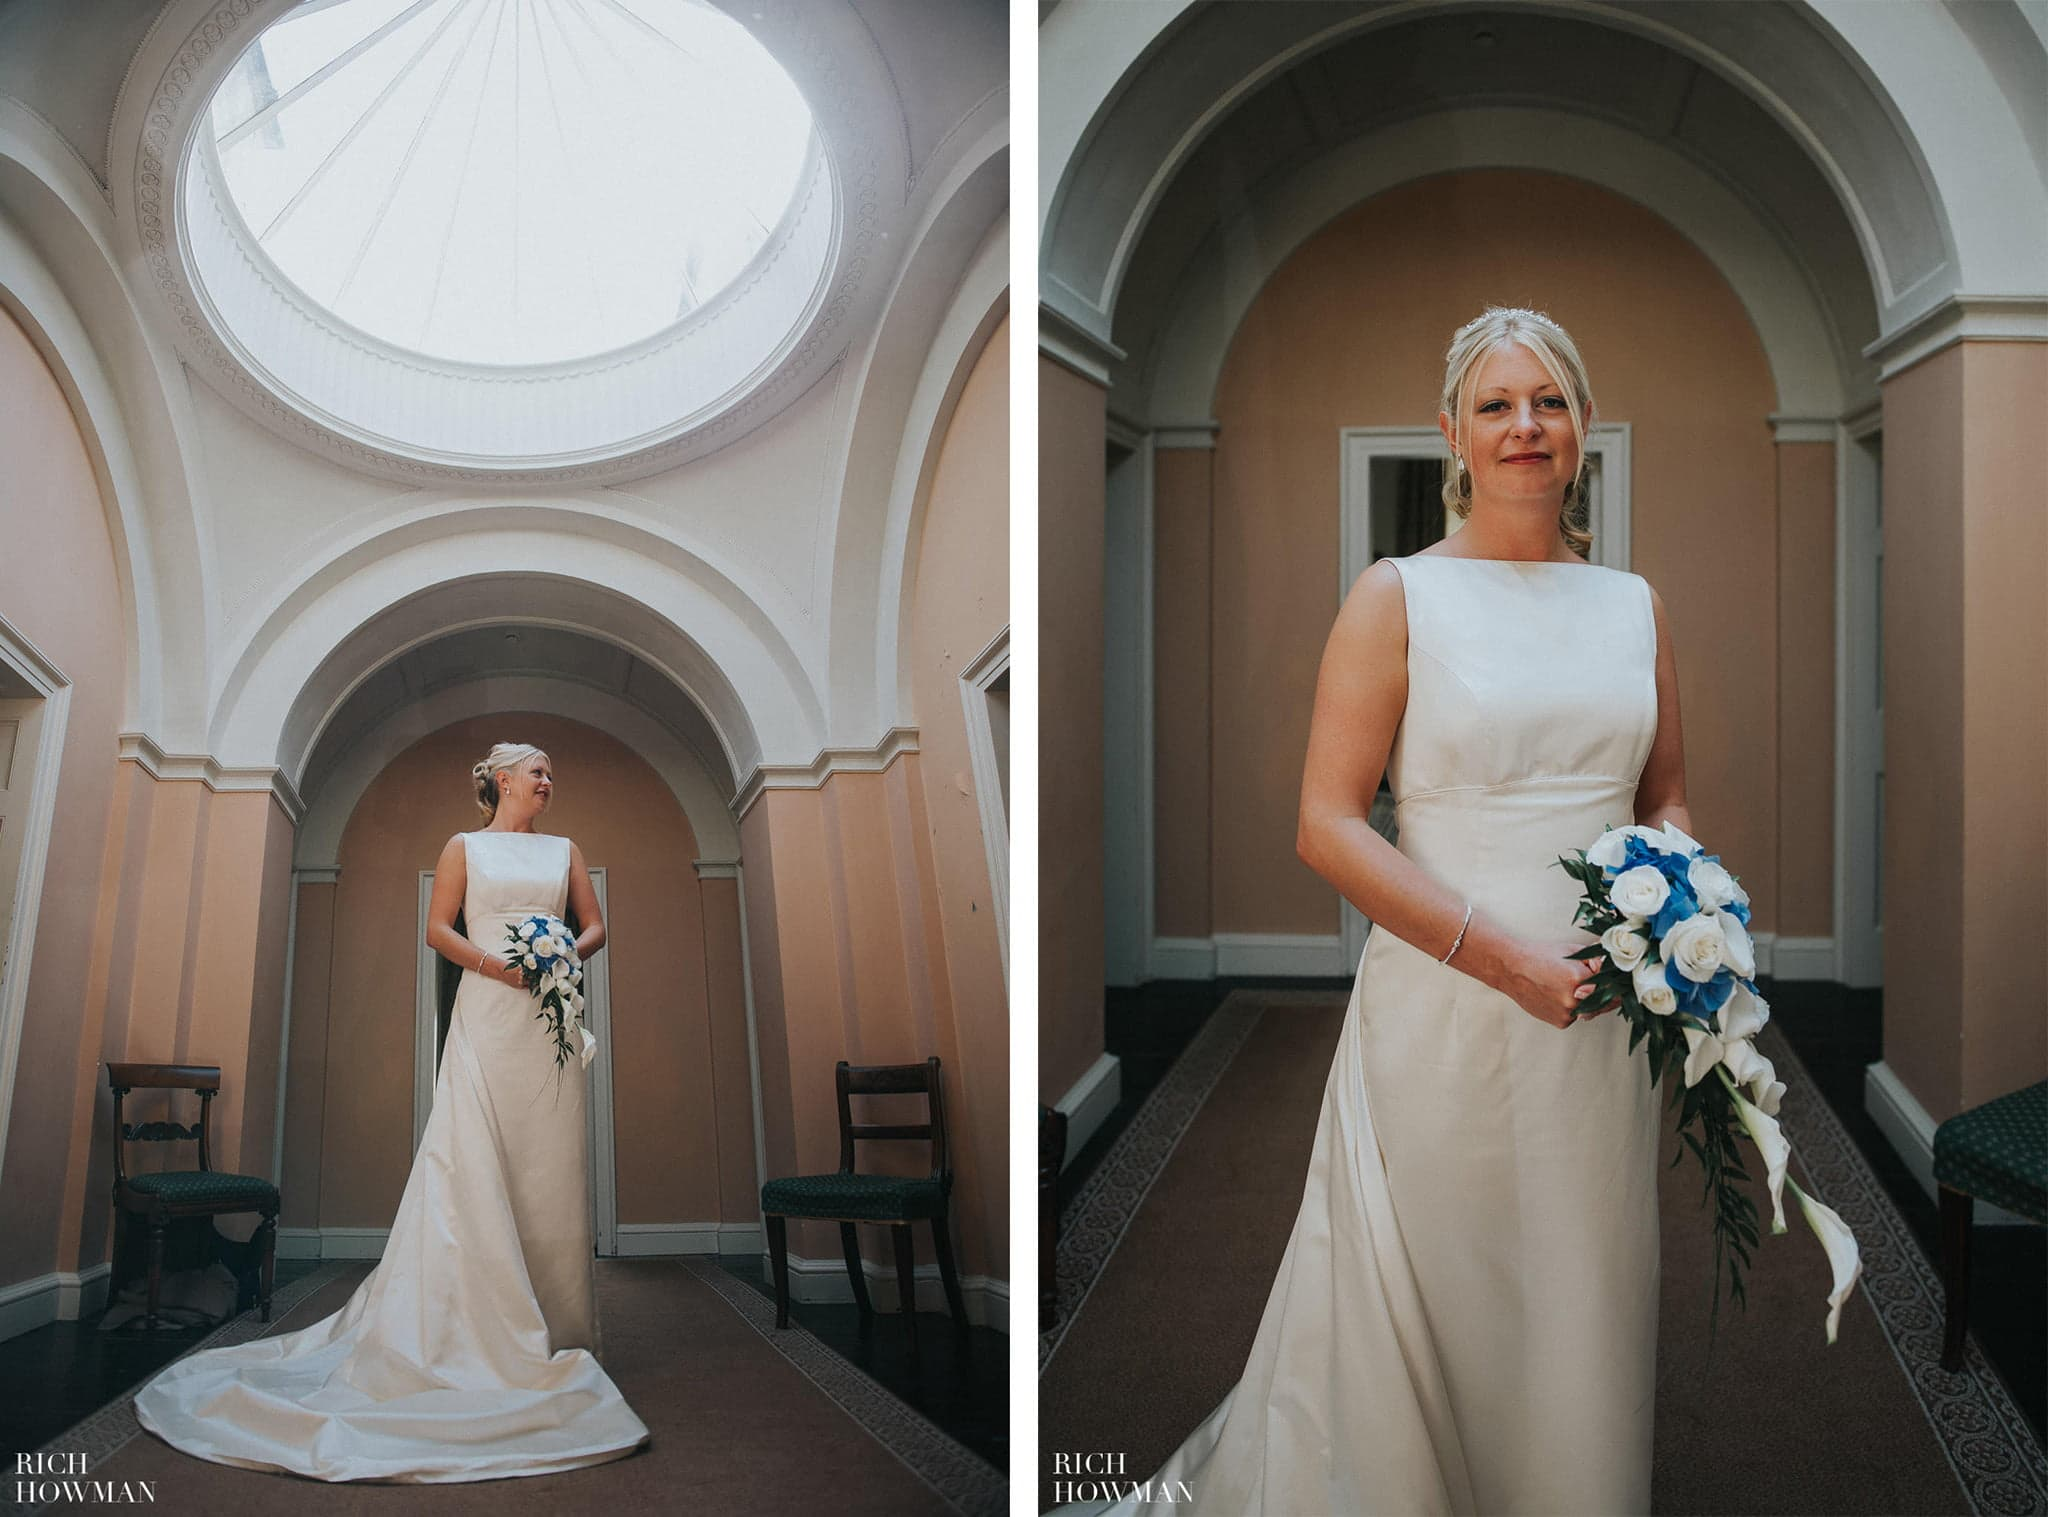 Sian the Bride photographed by Rich during her wedding at Llanerchaeron.